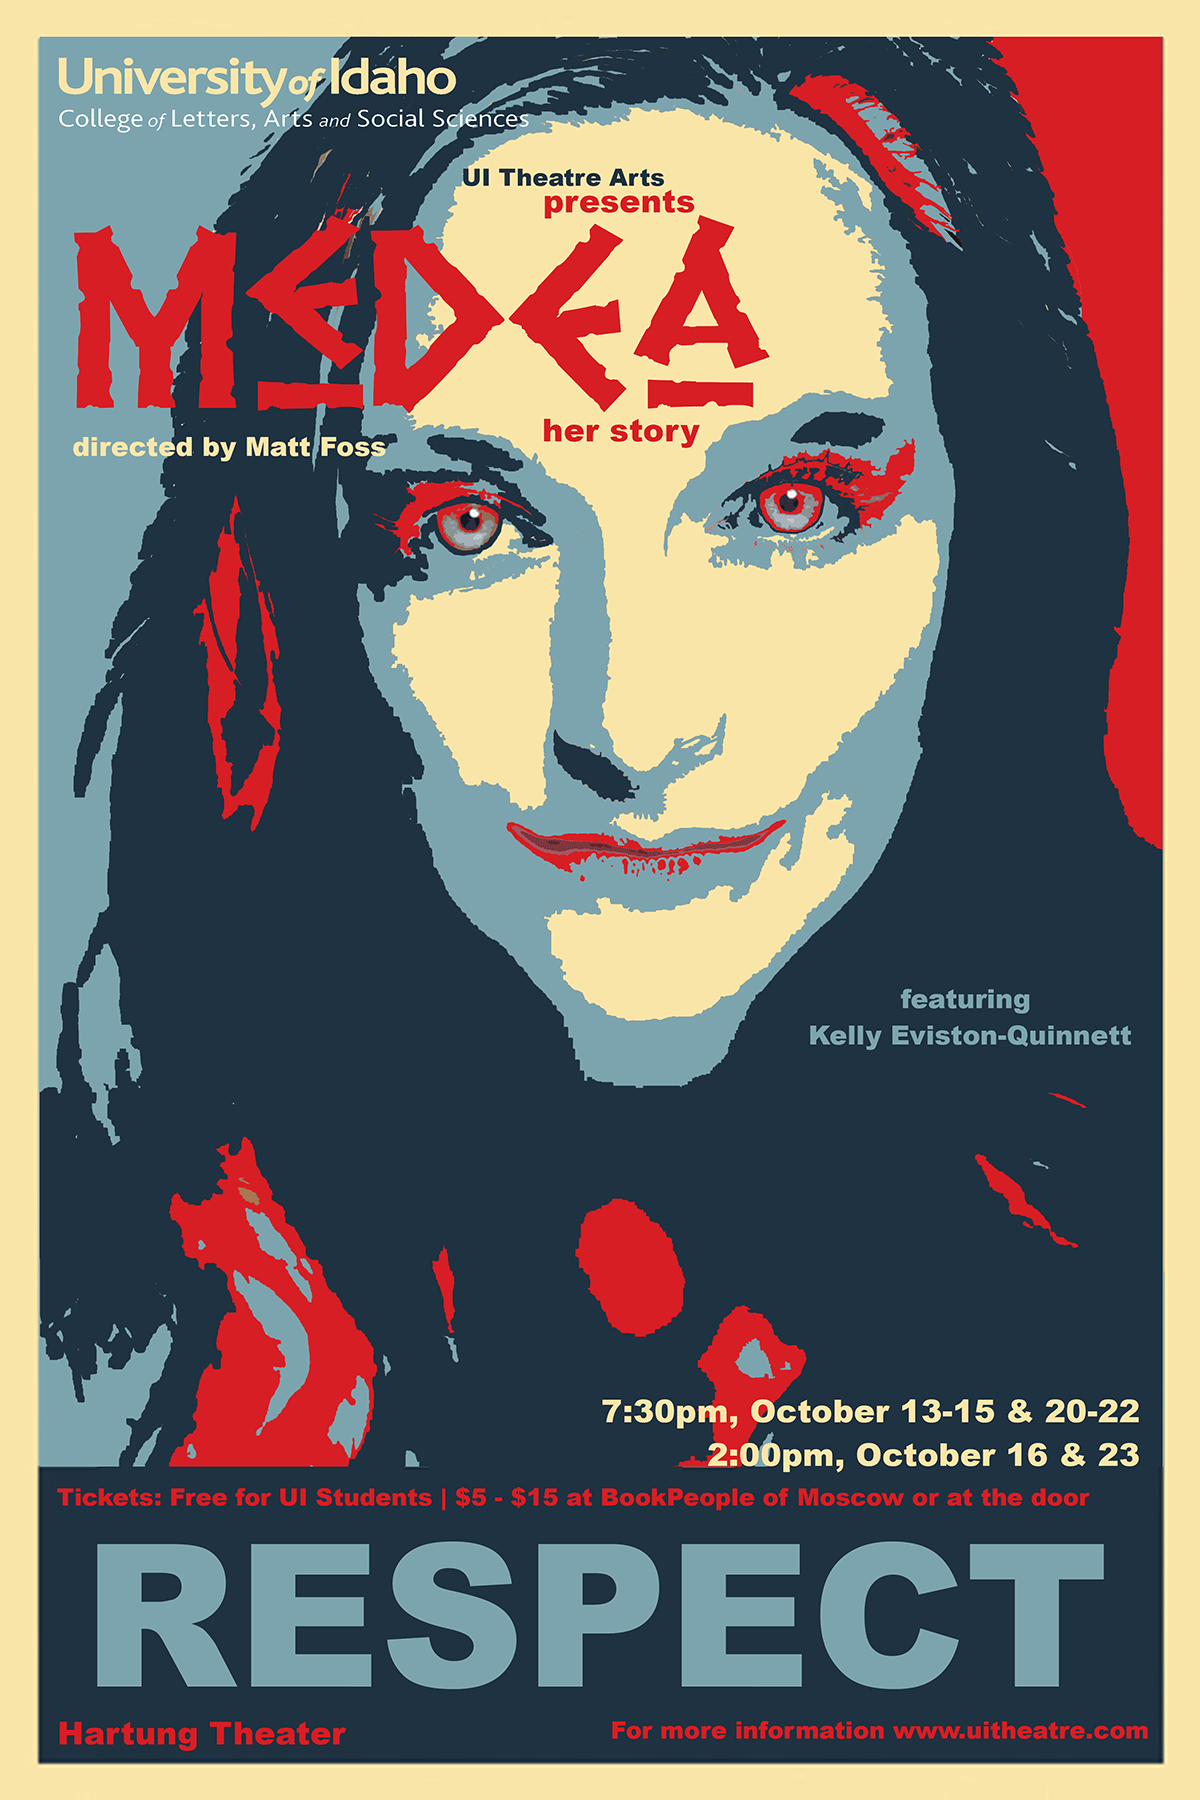 Poster for Medea